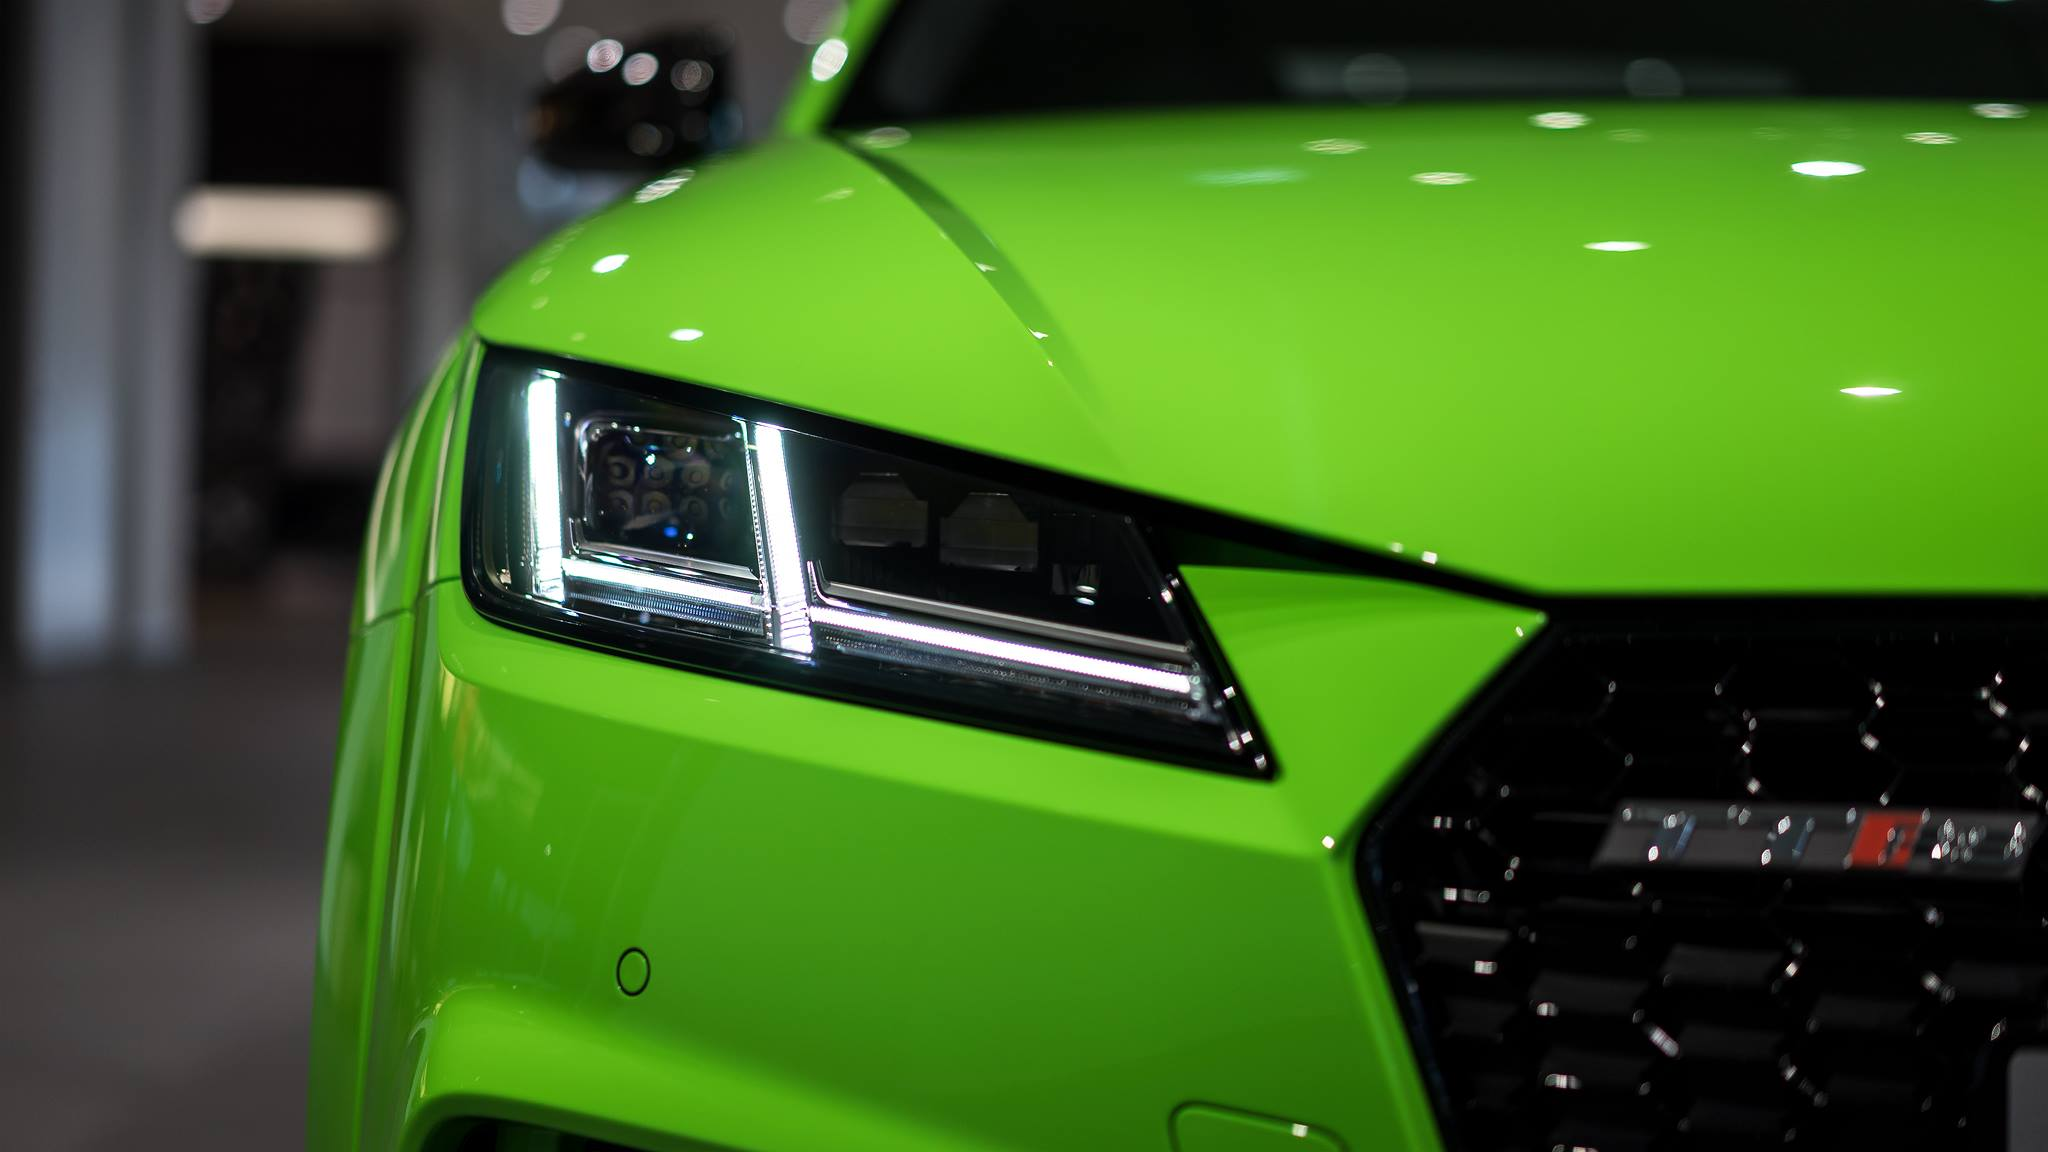 Motorcycle And Car Drift Wallpaper 2017 Audi Tt Rs In Lime Green Looks Like A Tiny Exotic Car